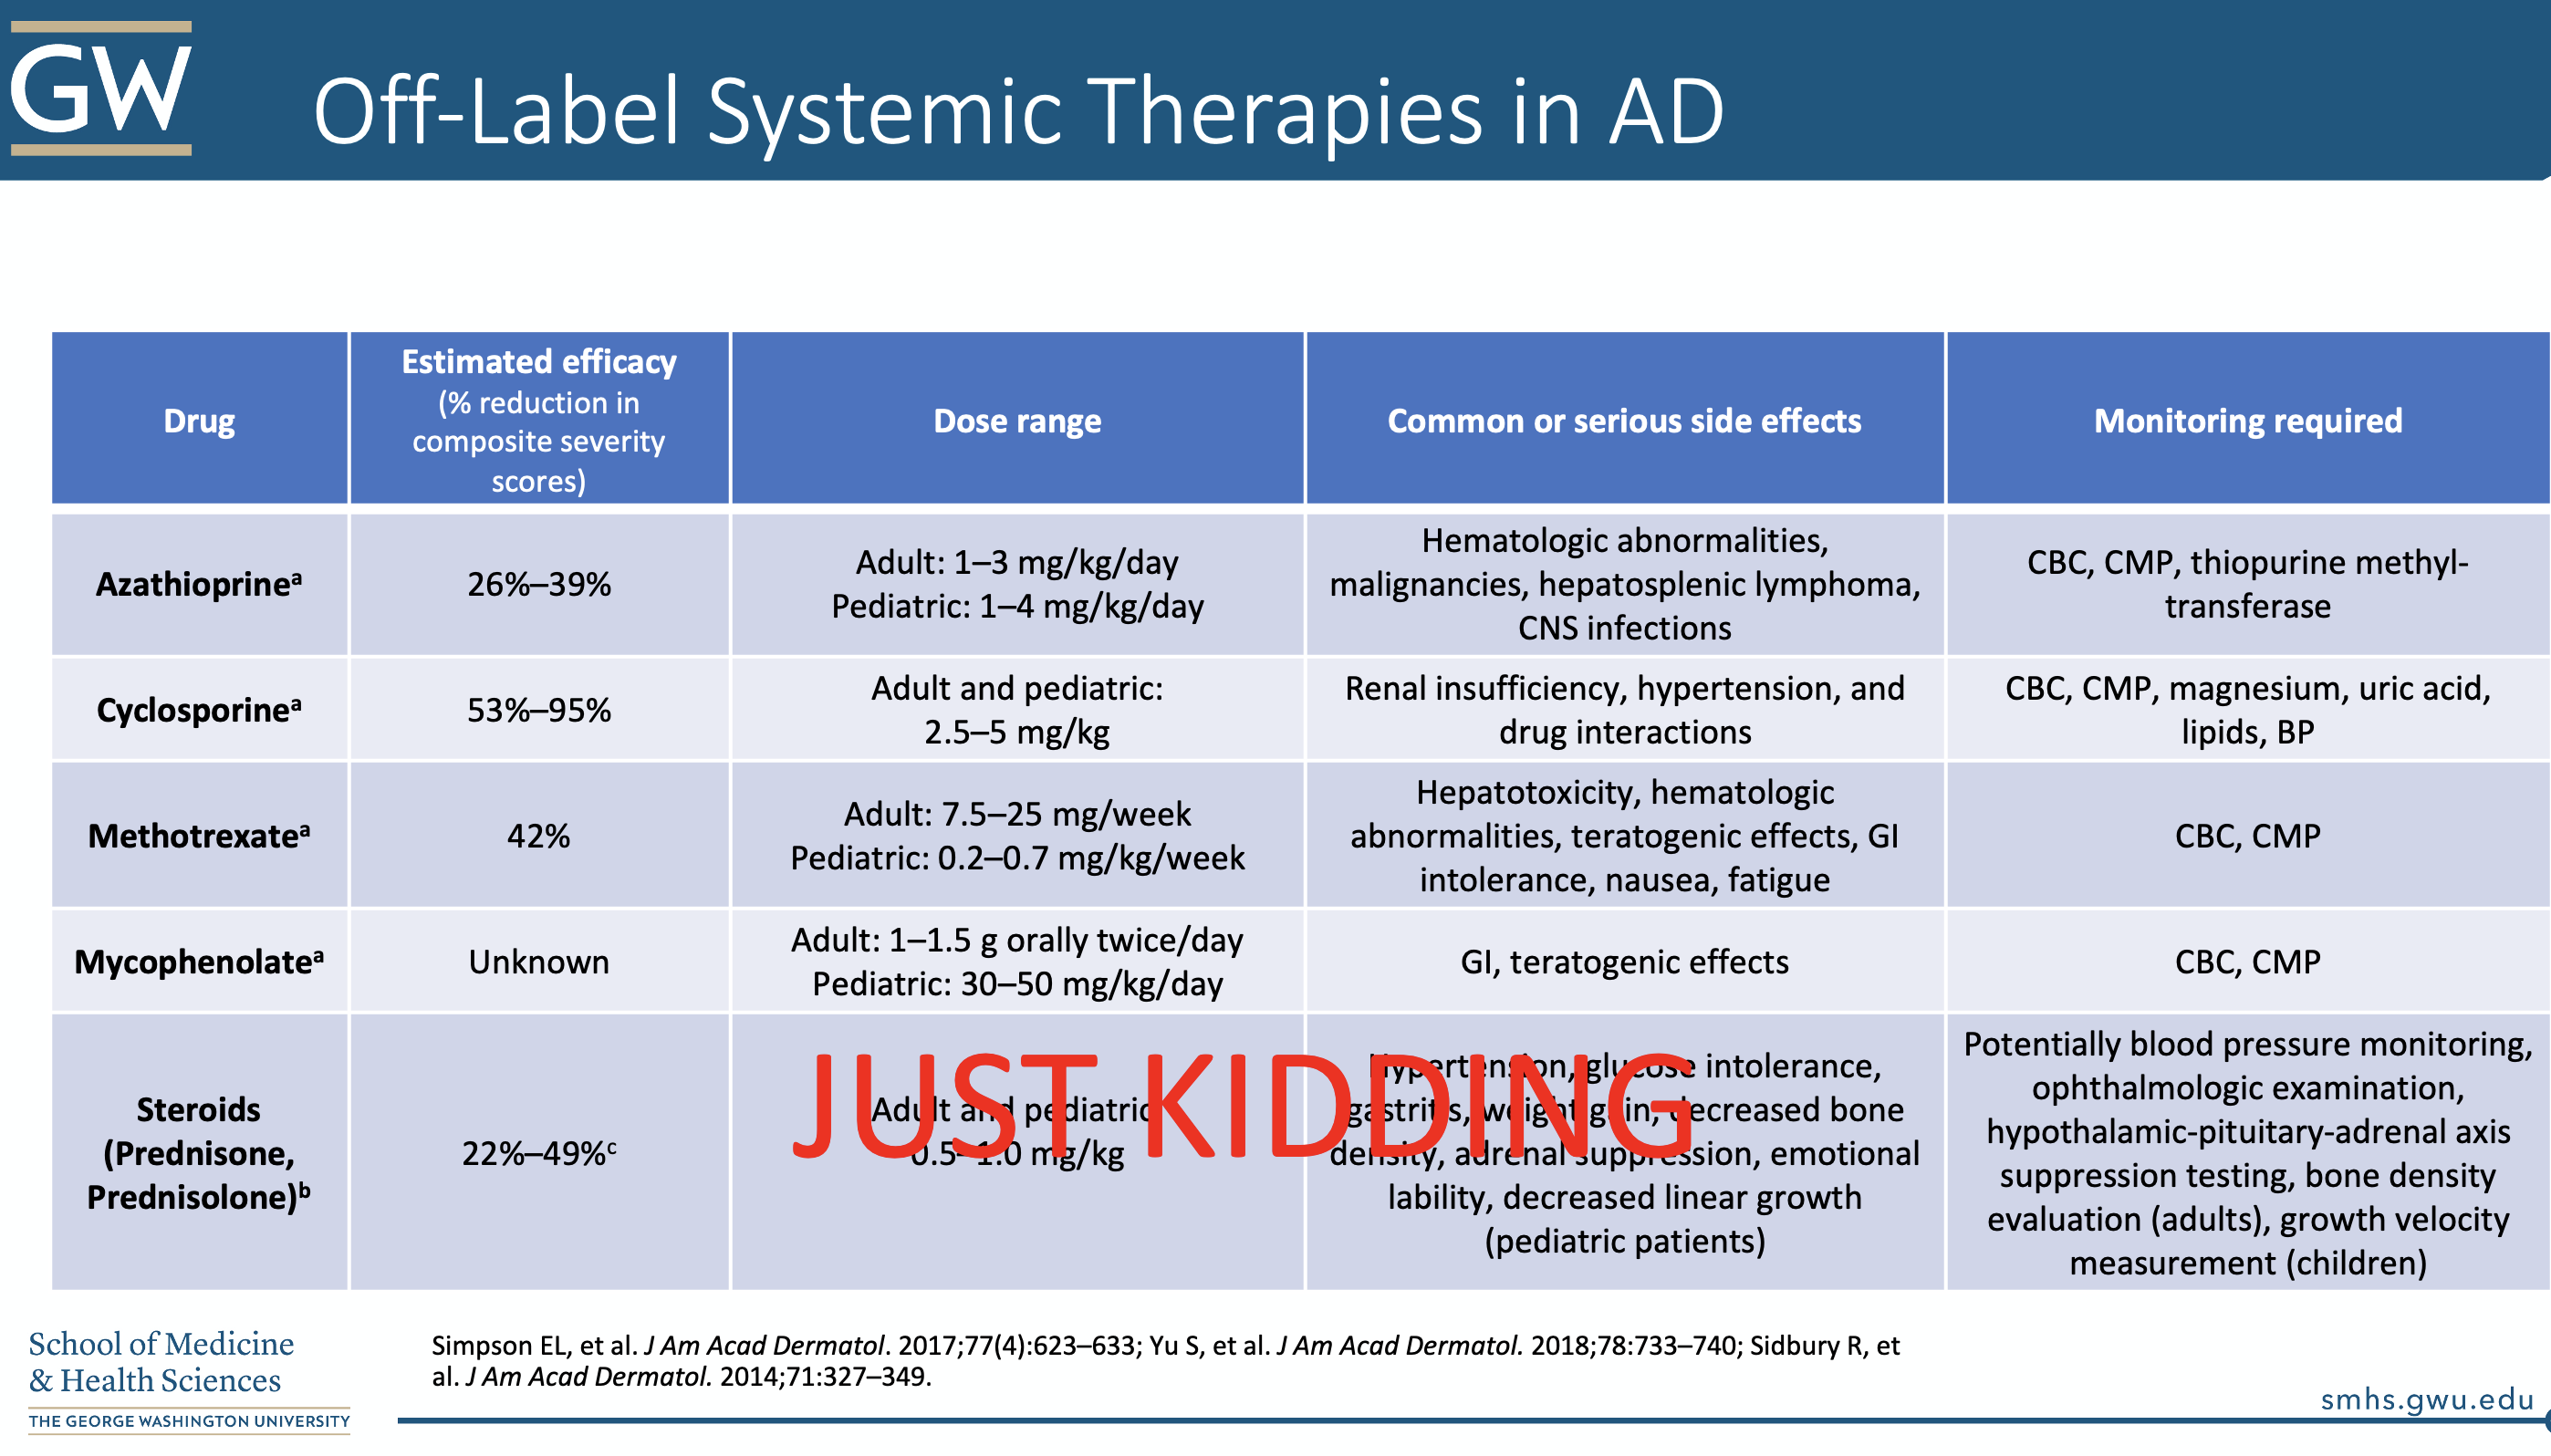 Off-Label Systemic Therapies in Atopic Dermatitis